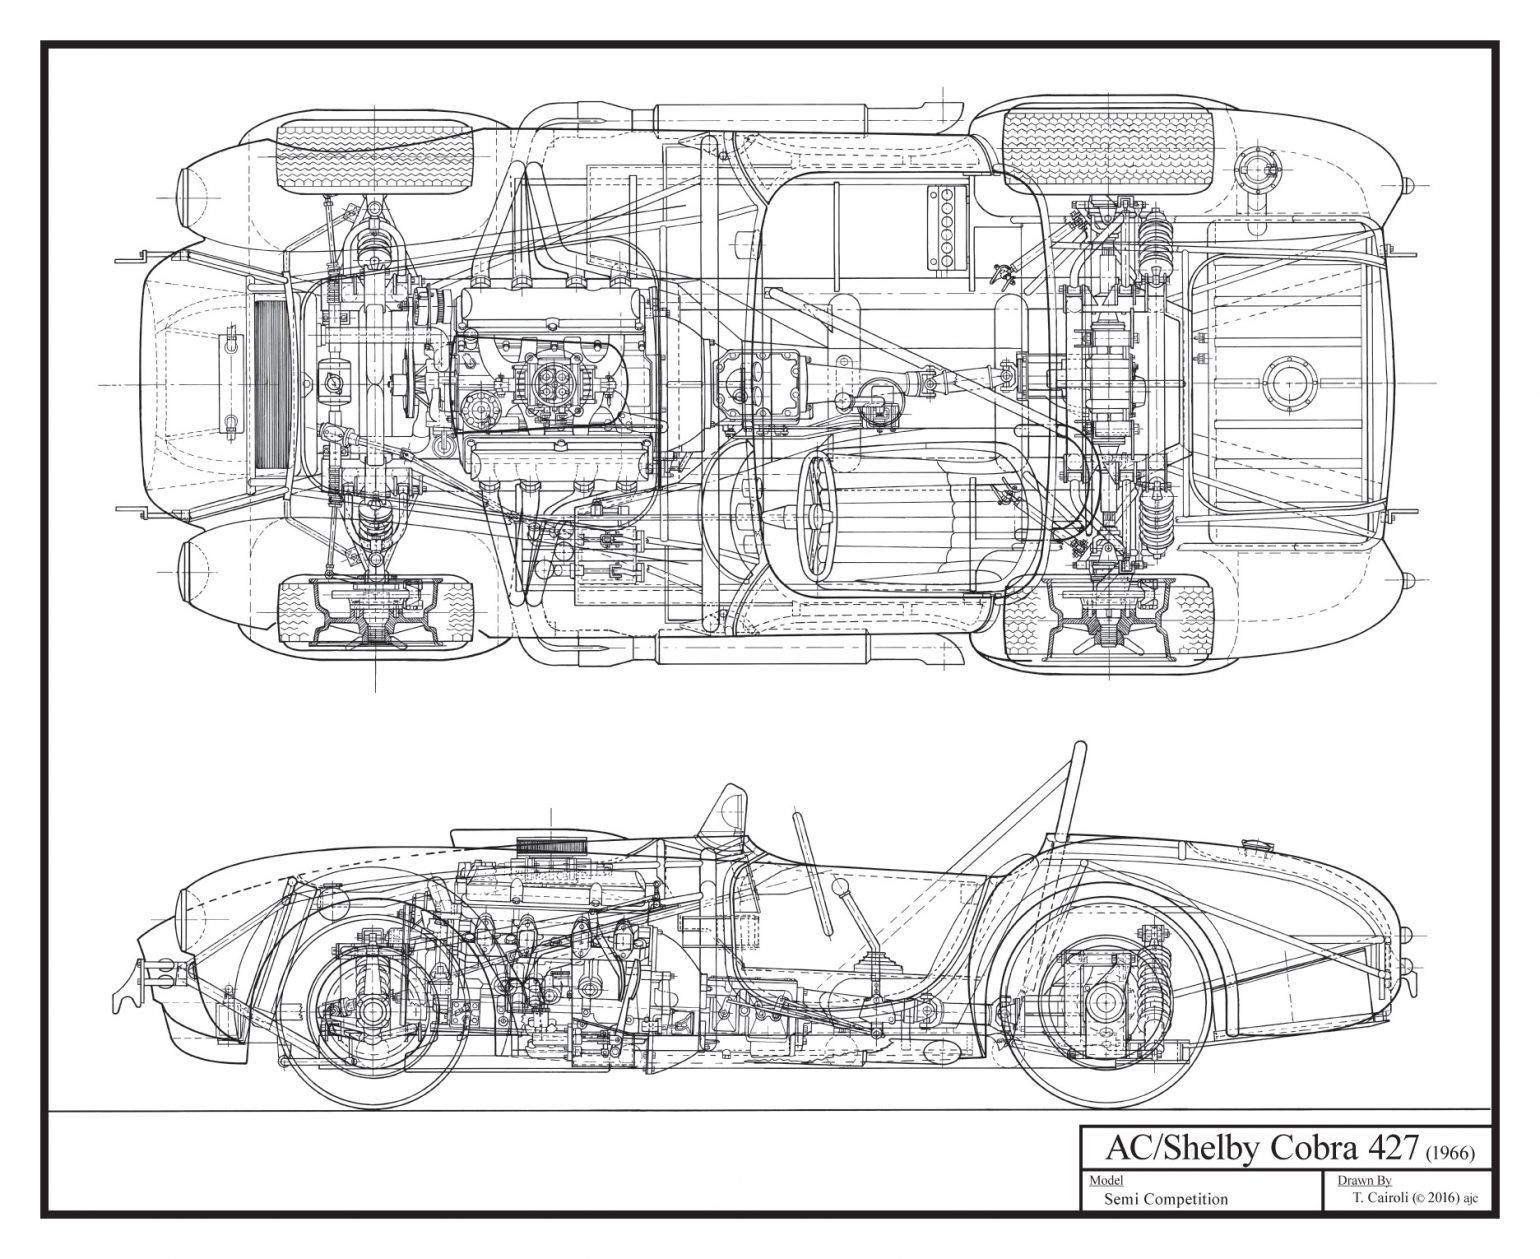 medium resolution of tony cairoli has completed his 1966 shelby cobra 427 schematic all hand